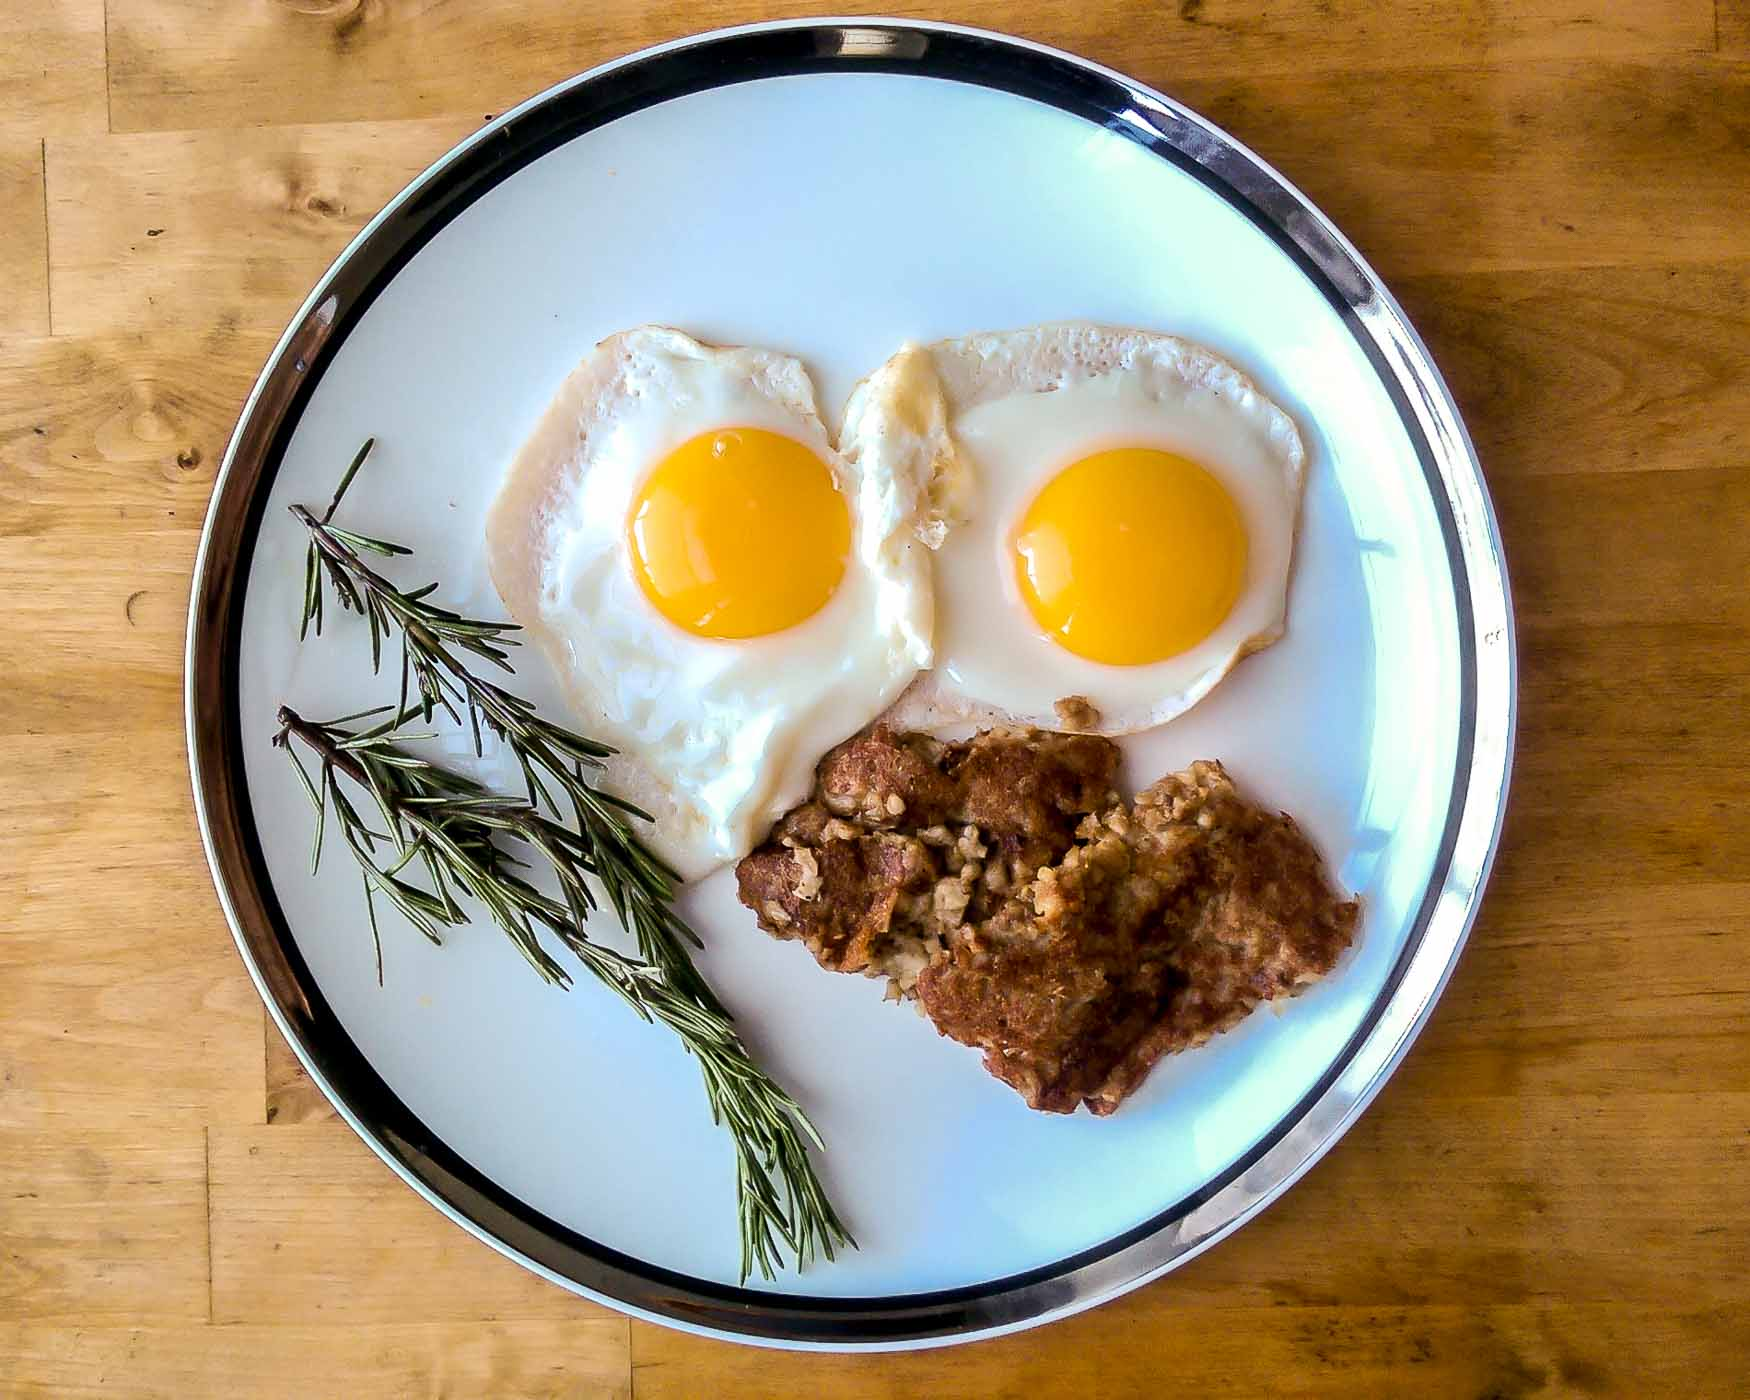 Goetta from Cincinnati, Ohio